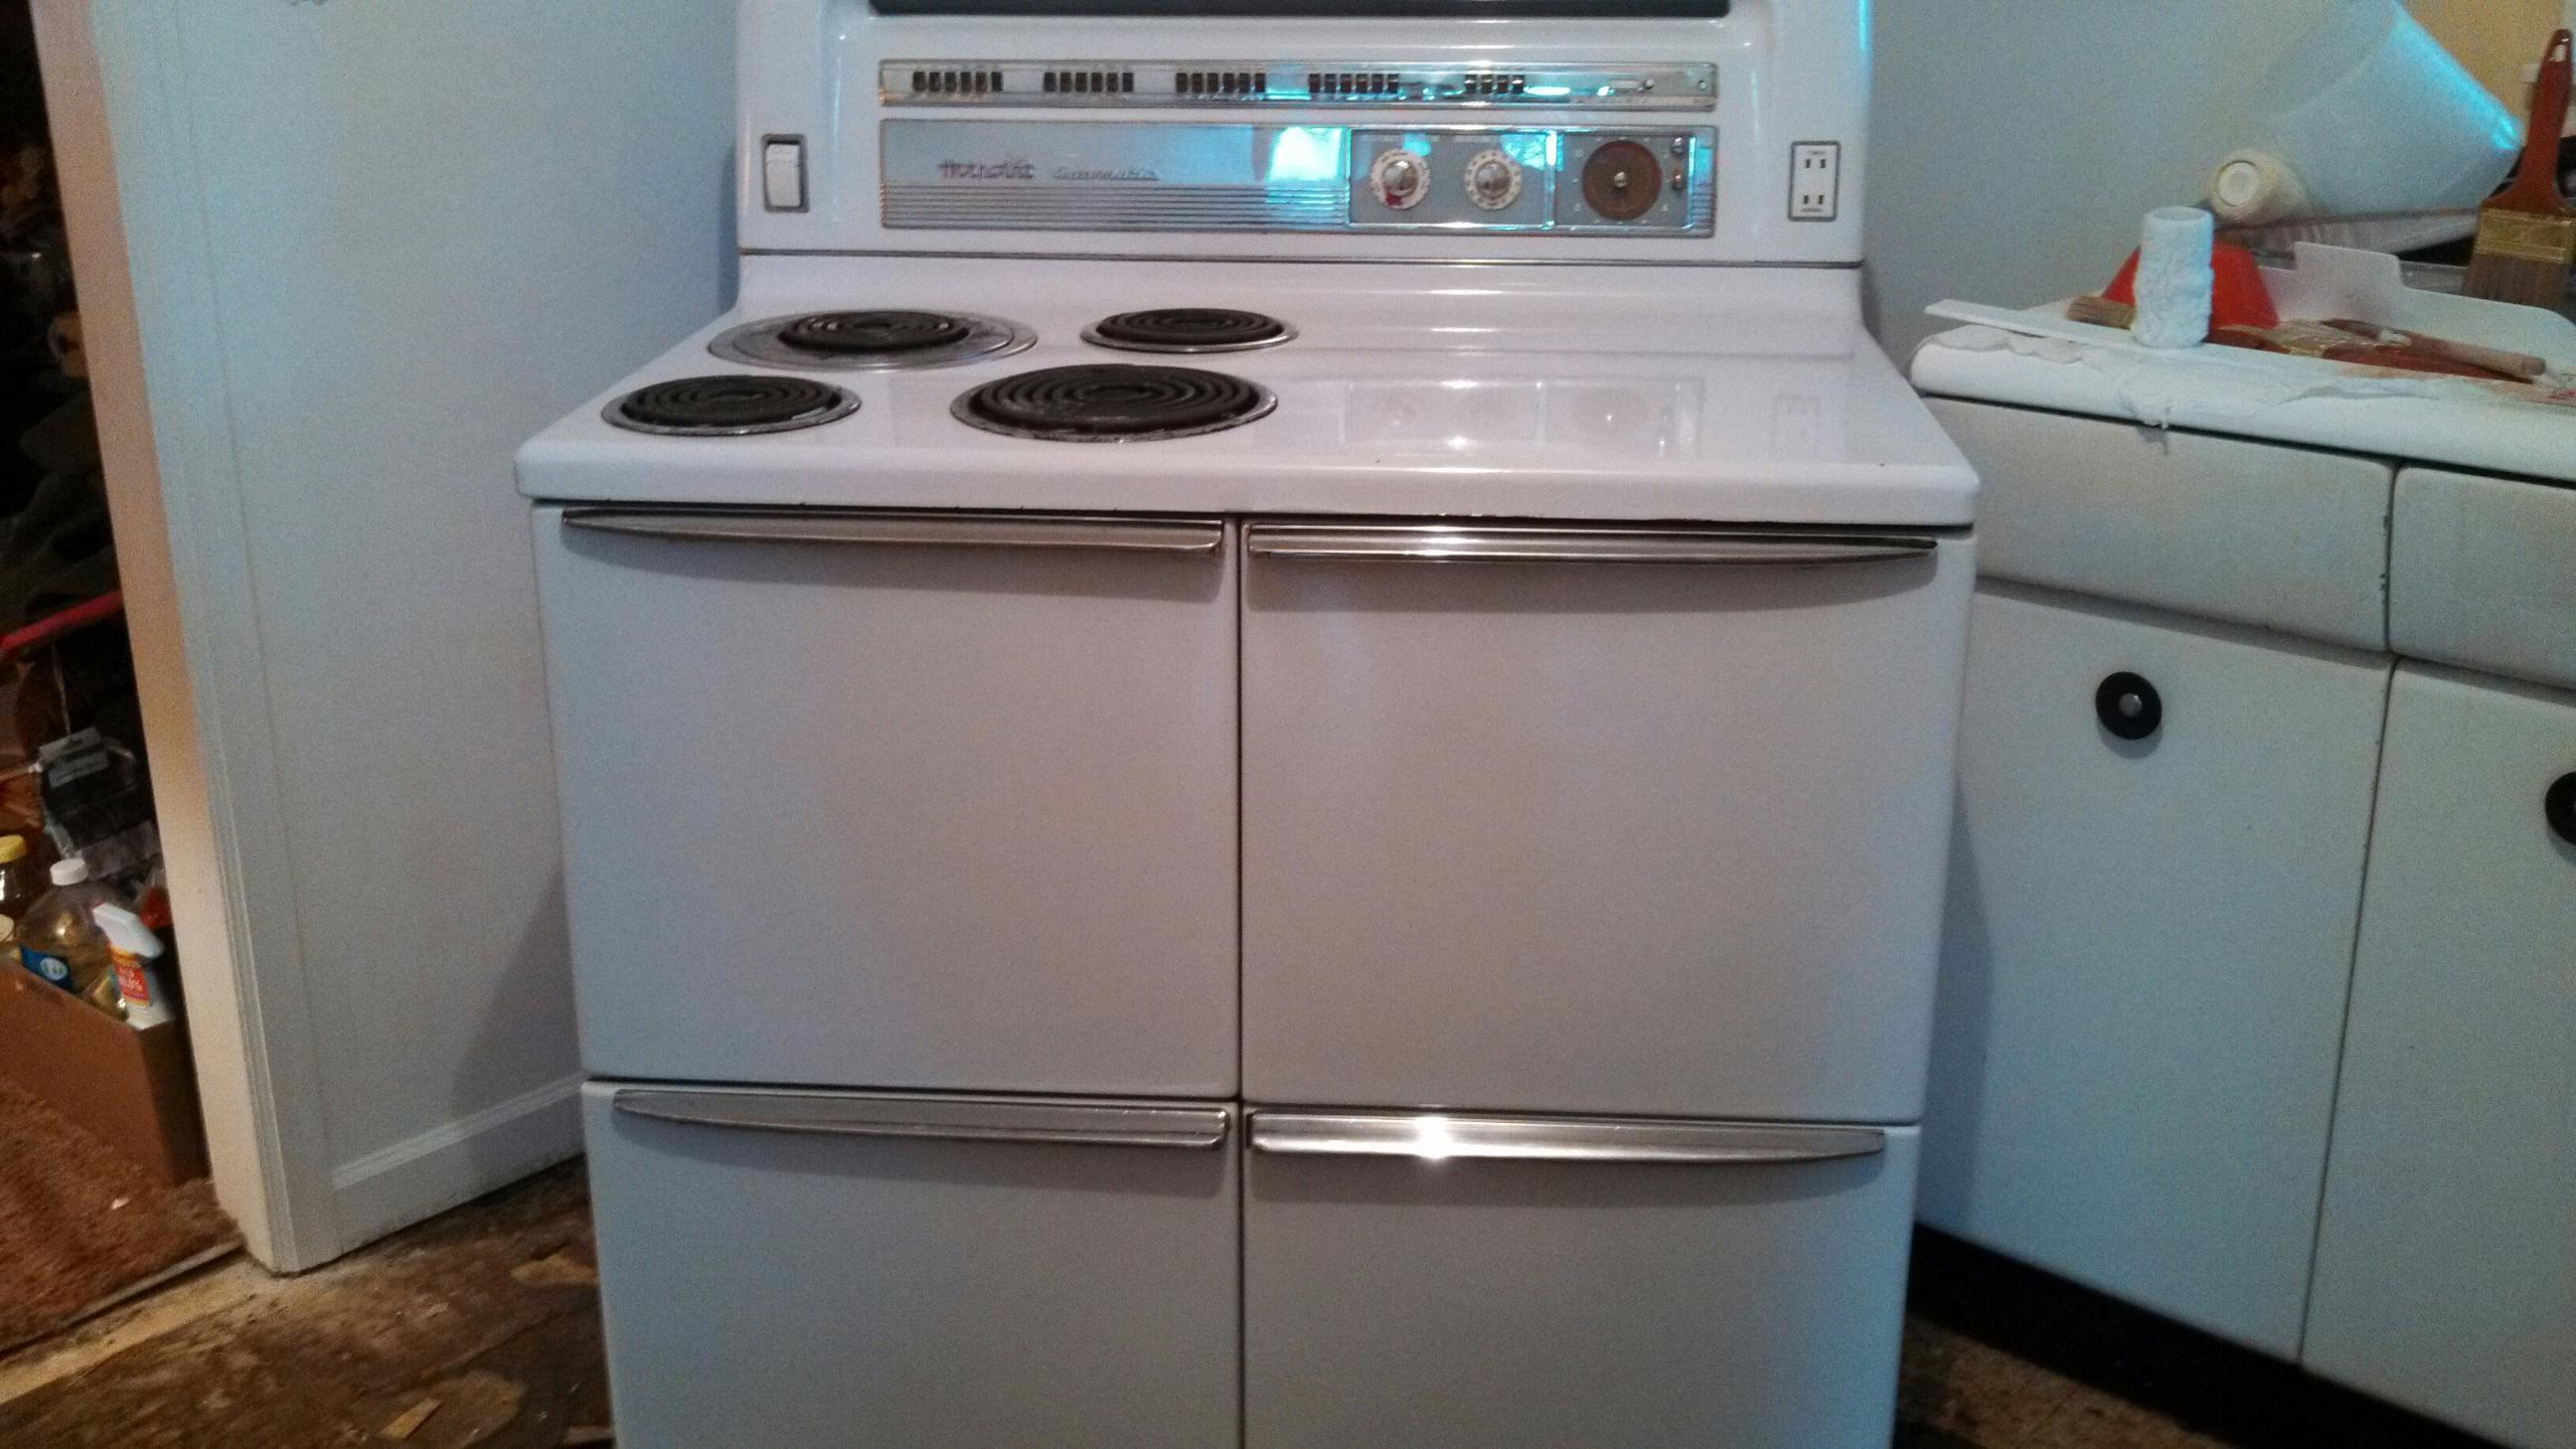 1948 Hotpoint Automatic Electric Stove antique appraisal ...